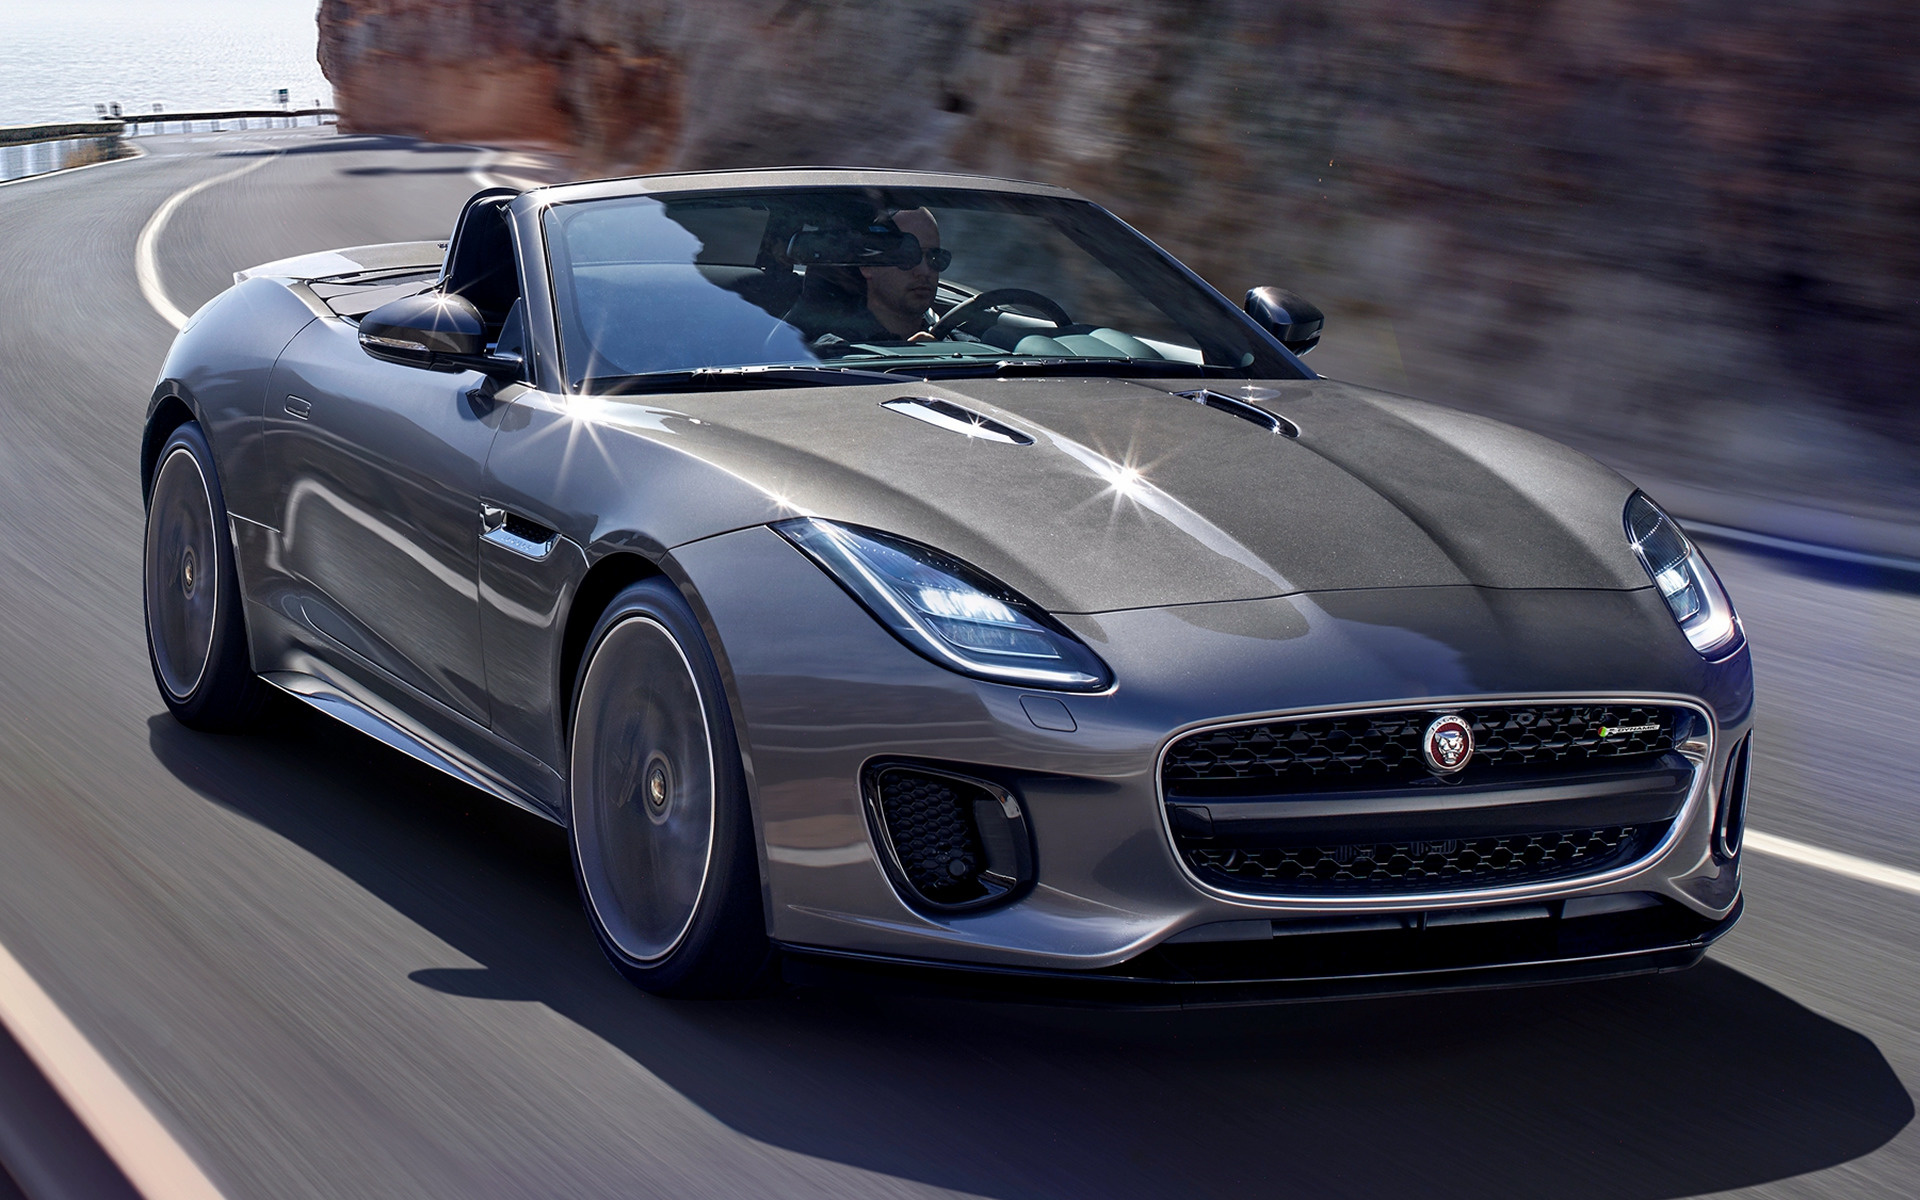 2017 Jaguar F-Type Convertible R-Dynamic - Wallpapers and ...